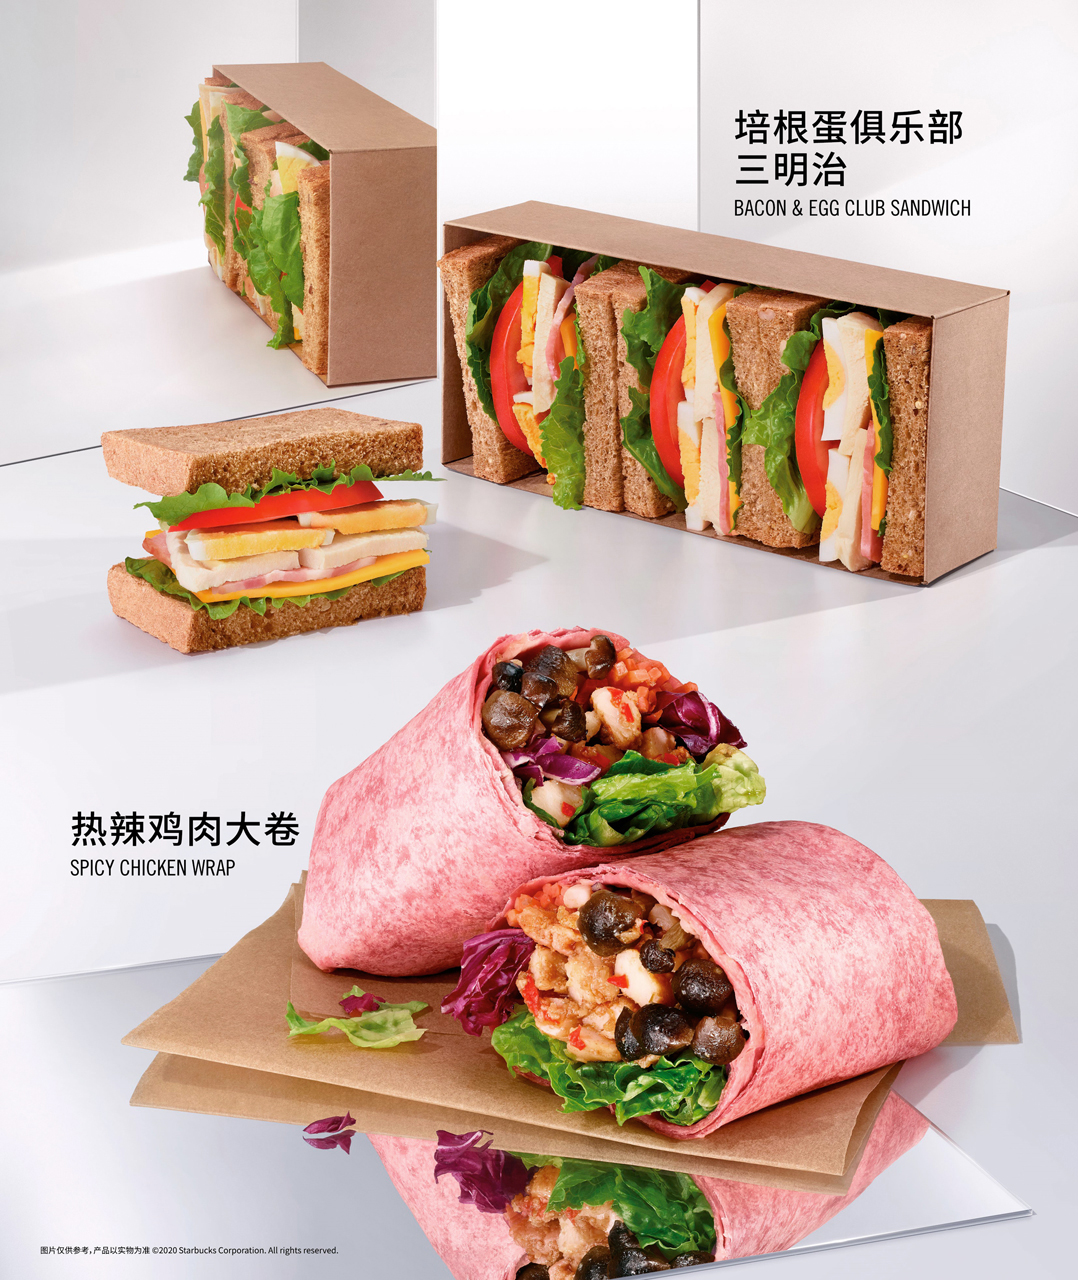 Sabine-Scheer-foodphotography-starbucks-china-clubsandwiches